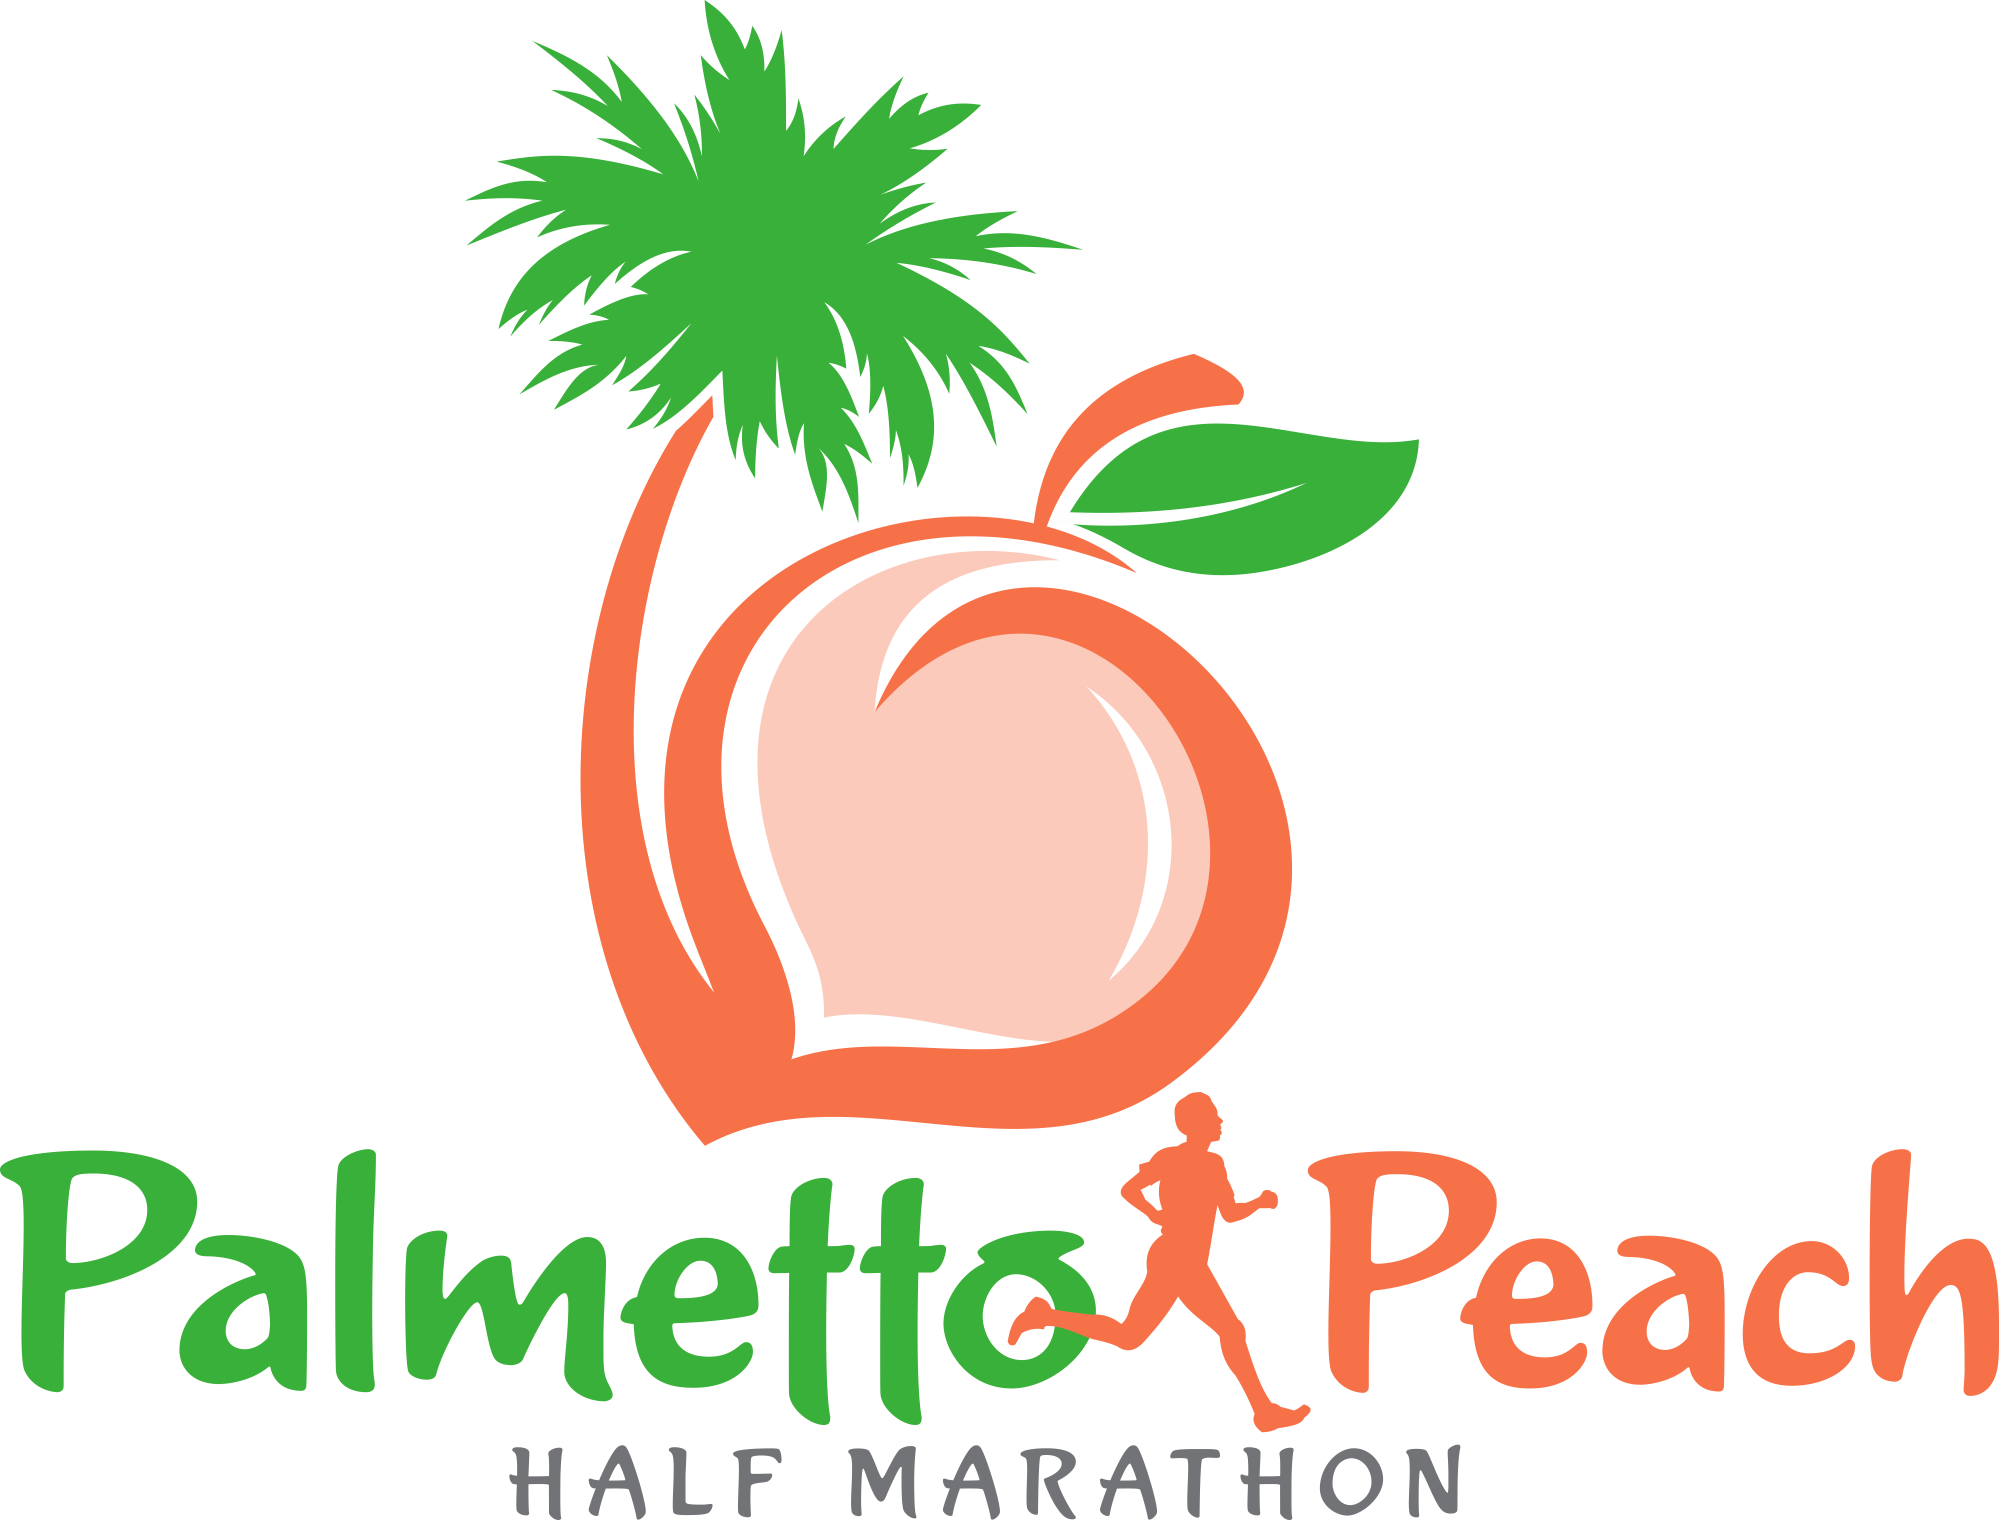 Cross country foot clipart clip freeuse Inaugural Palmetto Peach Half Marathon, 10k & 5k - Fleet Feet Sports ... clip freeuse